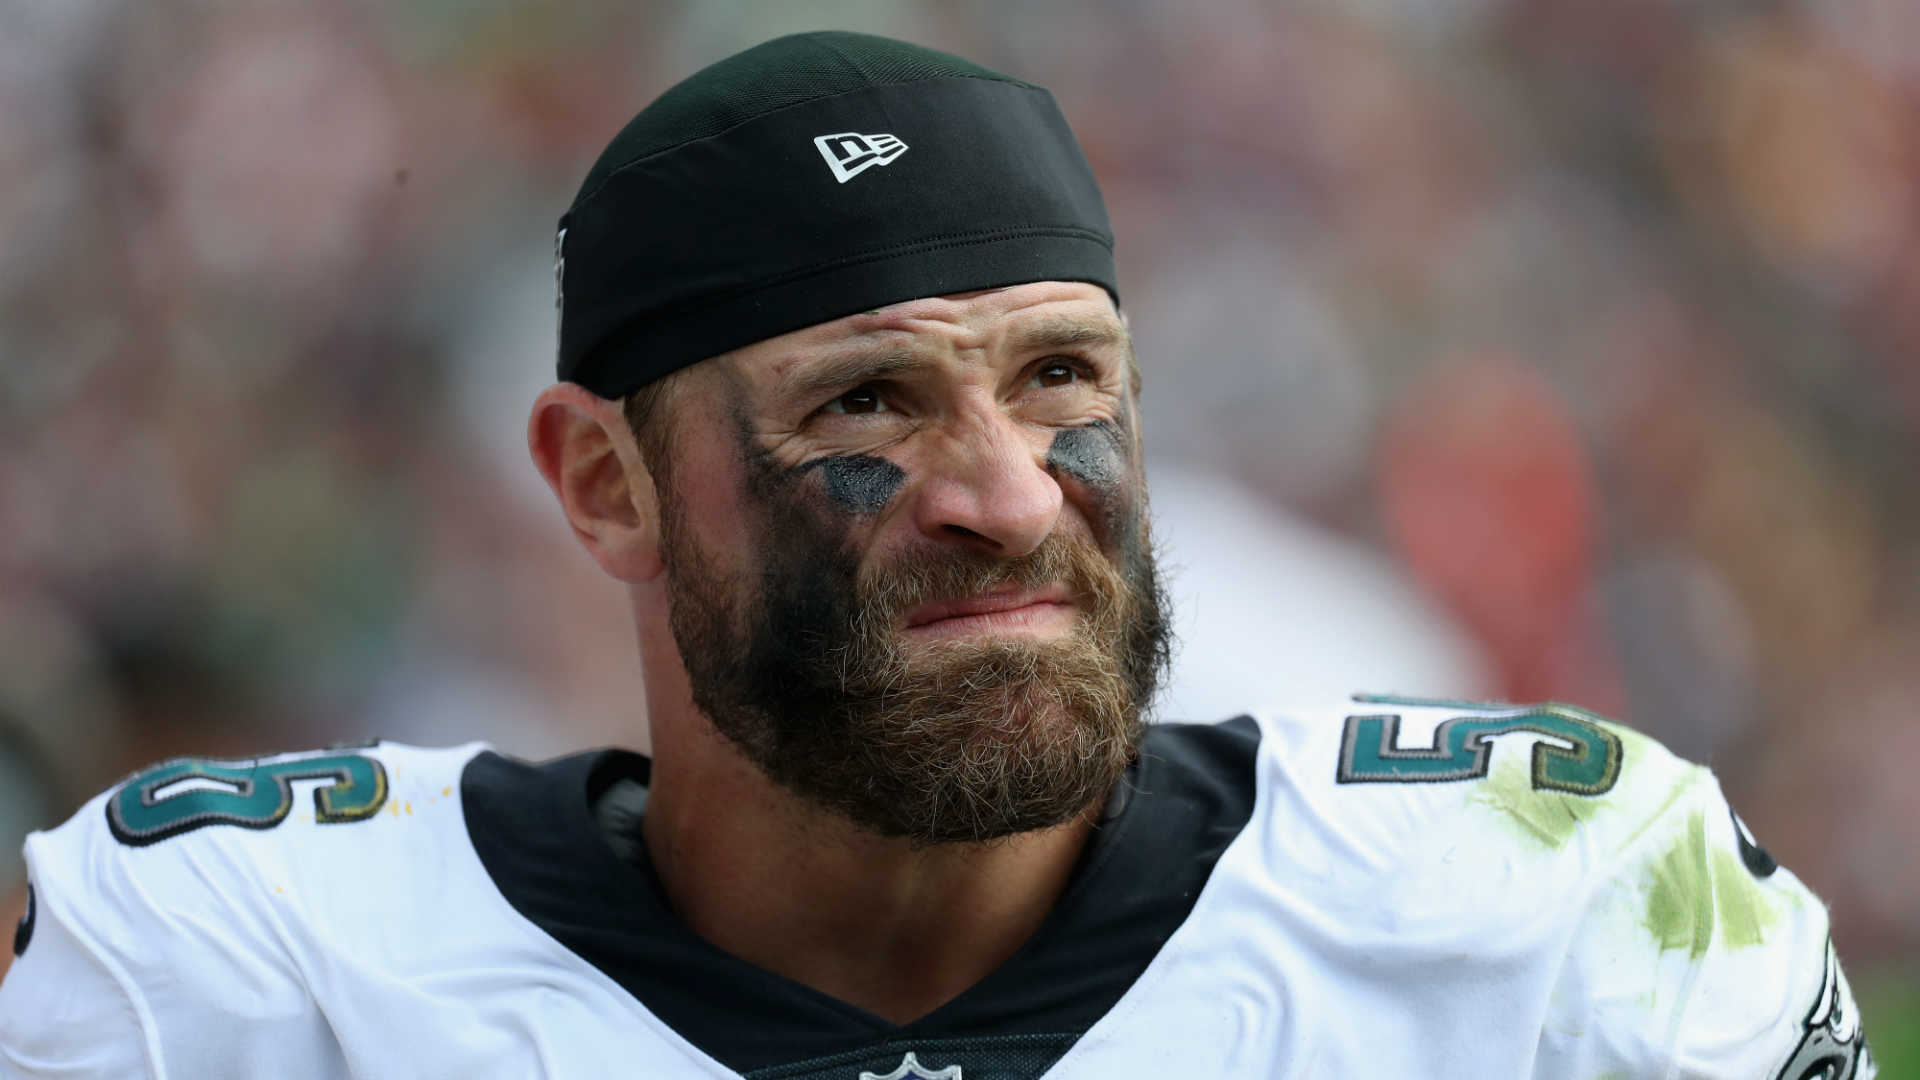 Eagles defensive end Chris Long is donating his salary